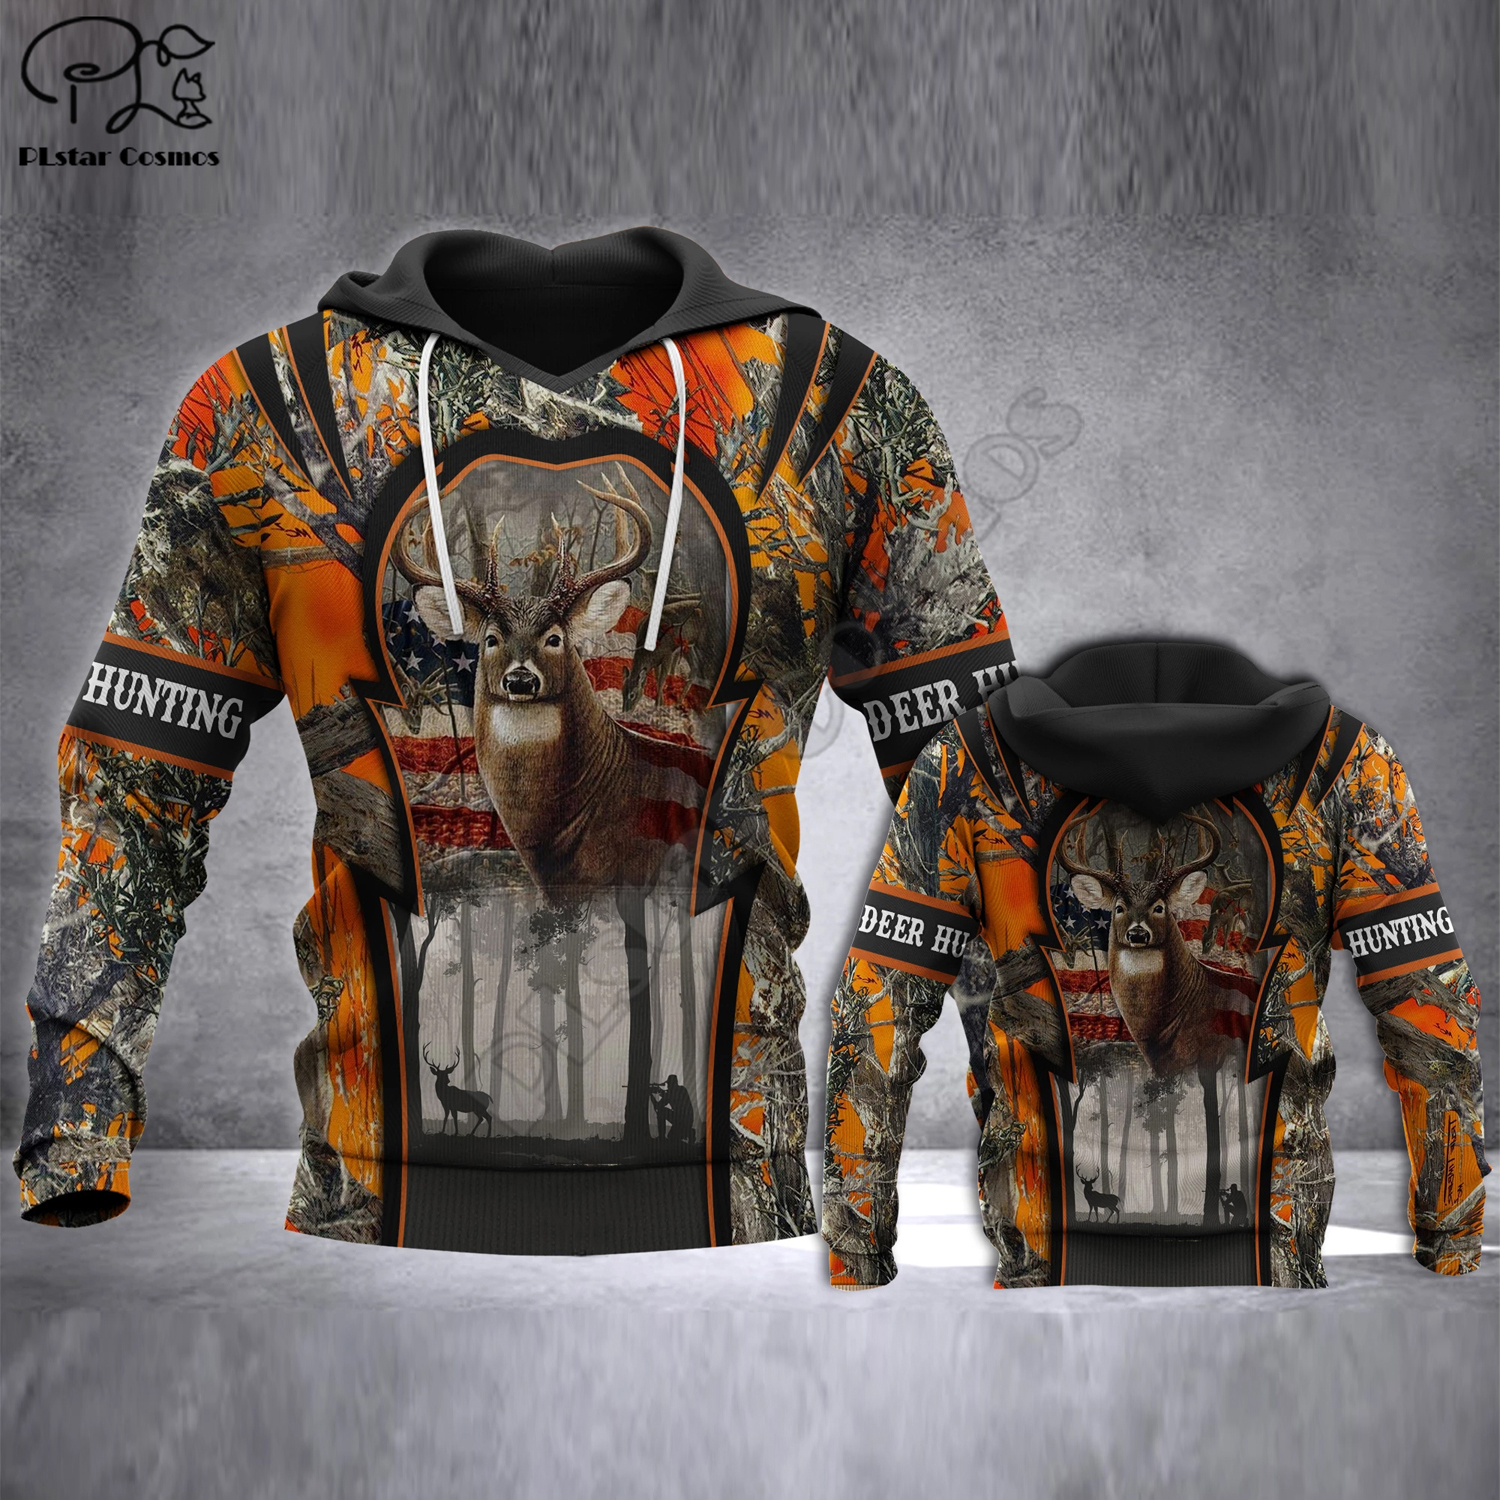 deer hunting printed <font><b>3d</b></font> <font><b>hoodies</b></font> <font><b>Unisex</b></font> <font><b>hoodies</b></font> Harajuku Fashion Casual Hooded Sweatshirt Drop shipping image